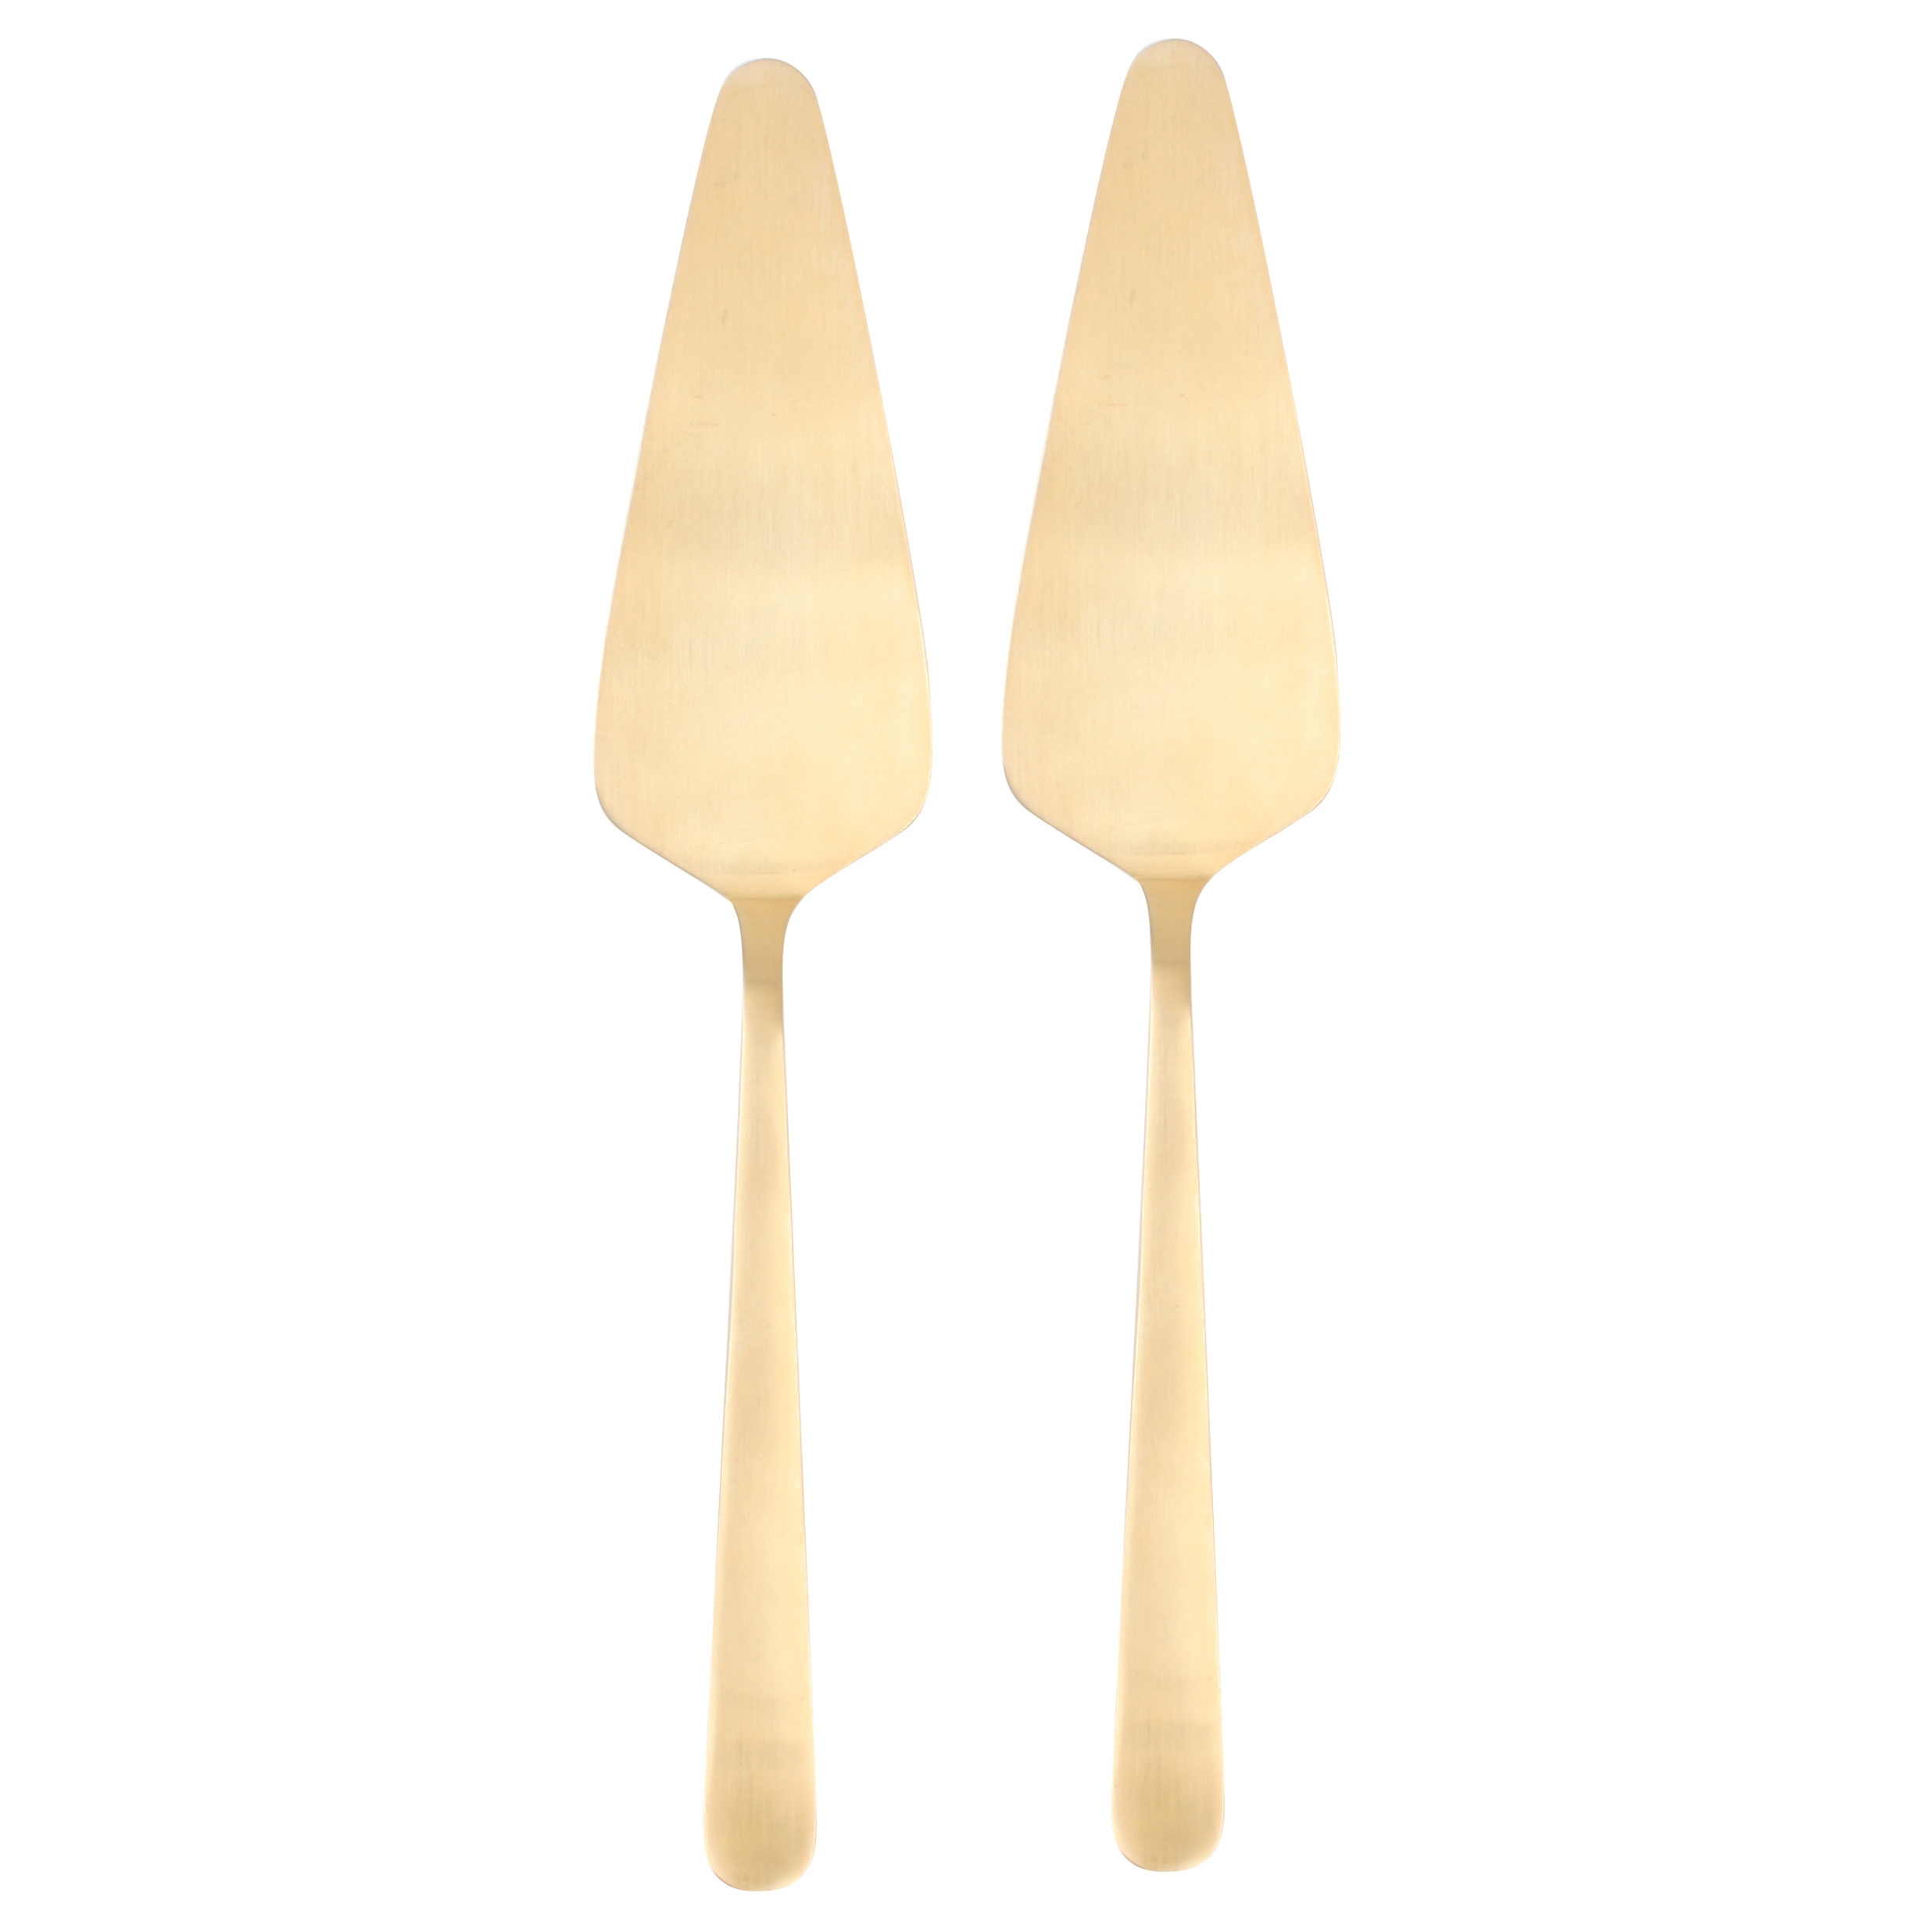 Oslo Matte Gold Cake Server - Pair